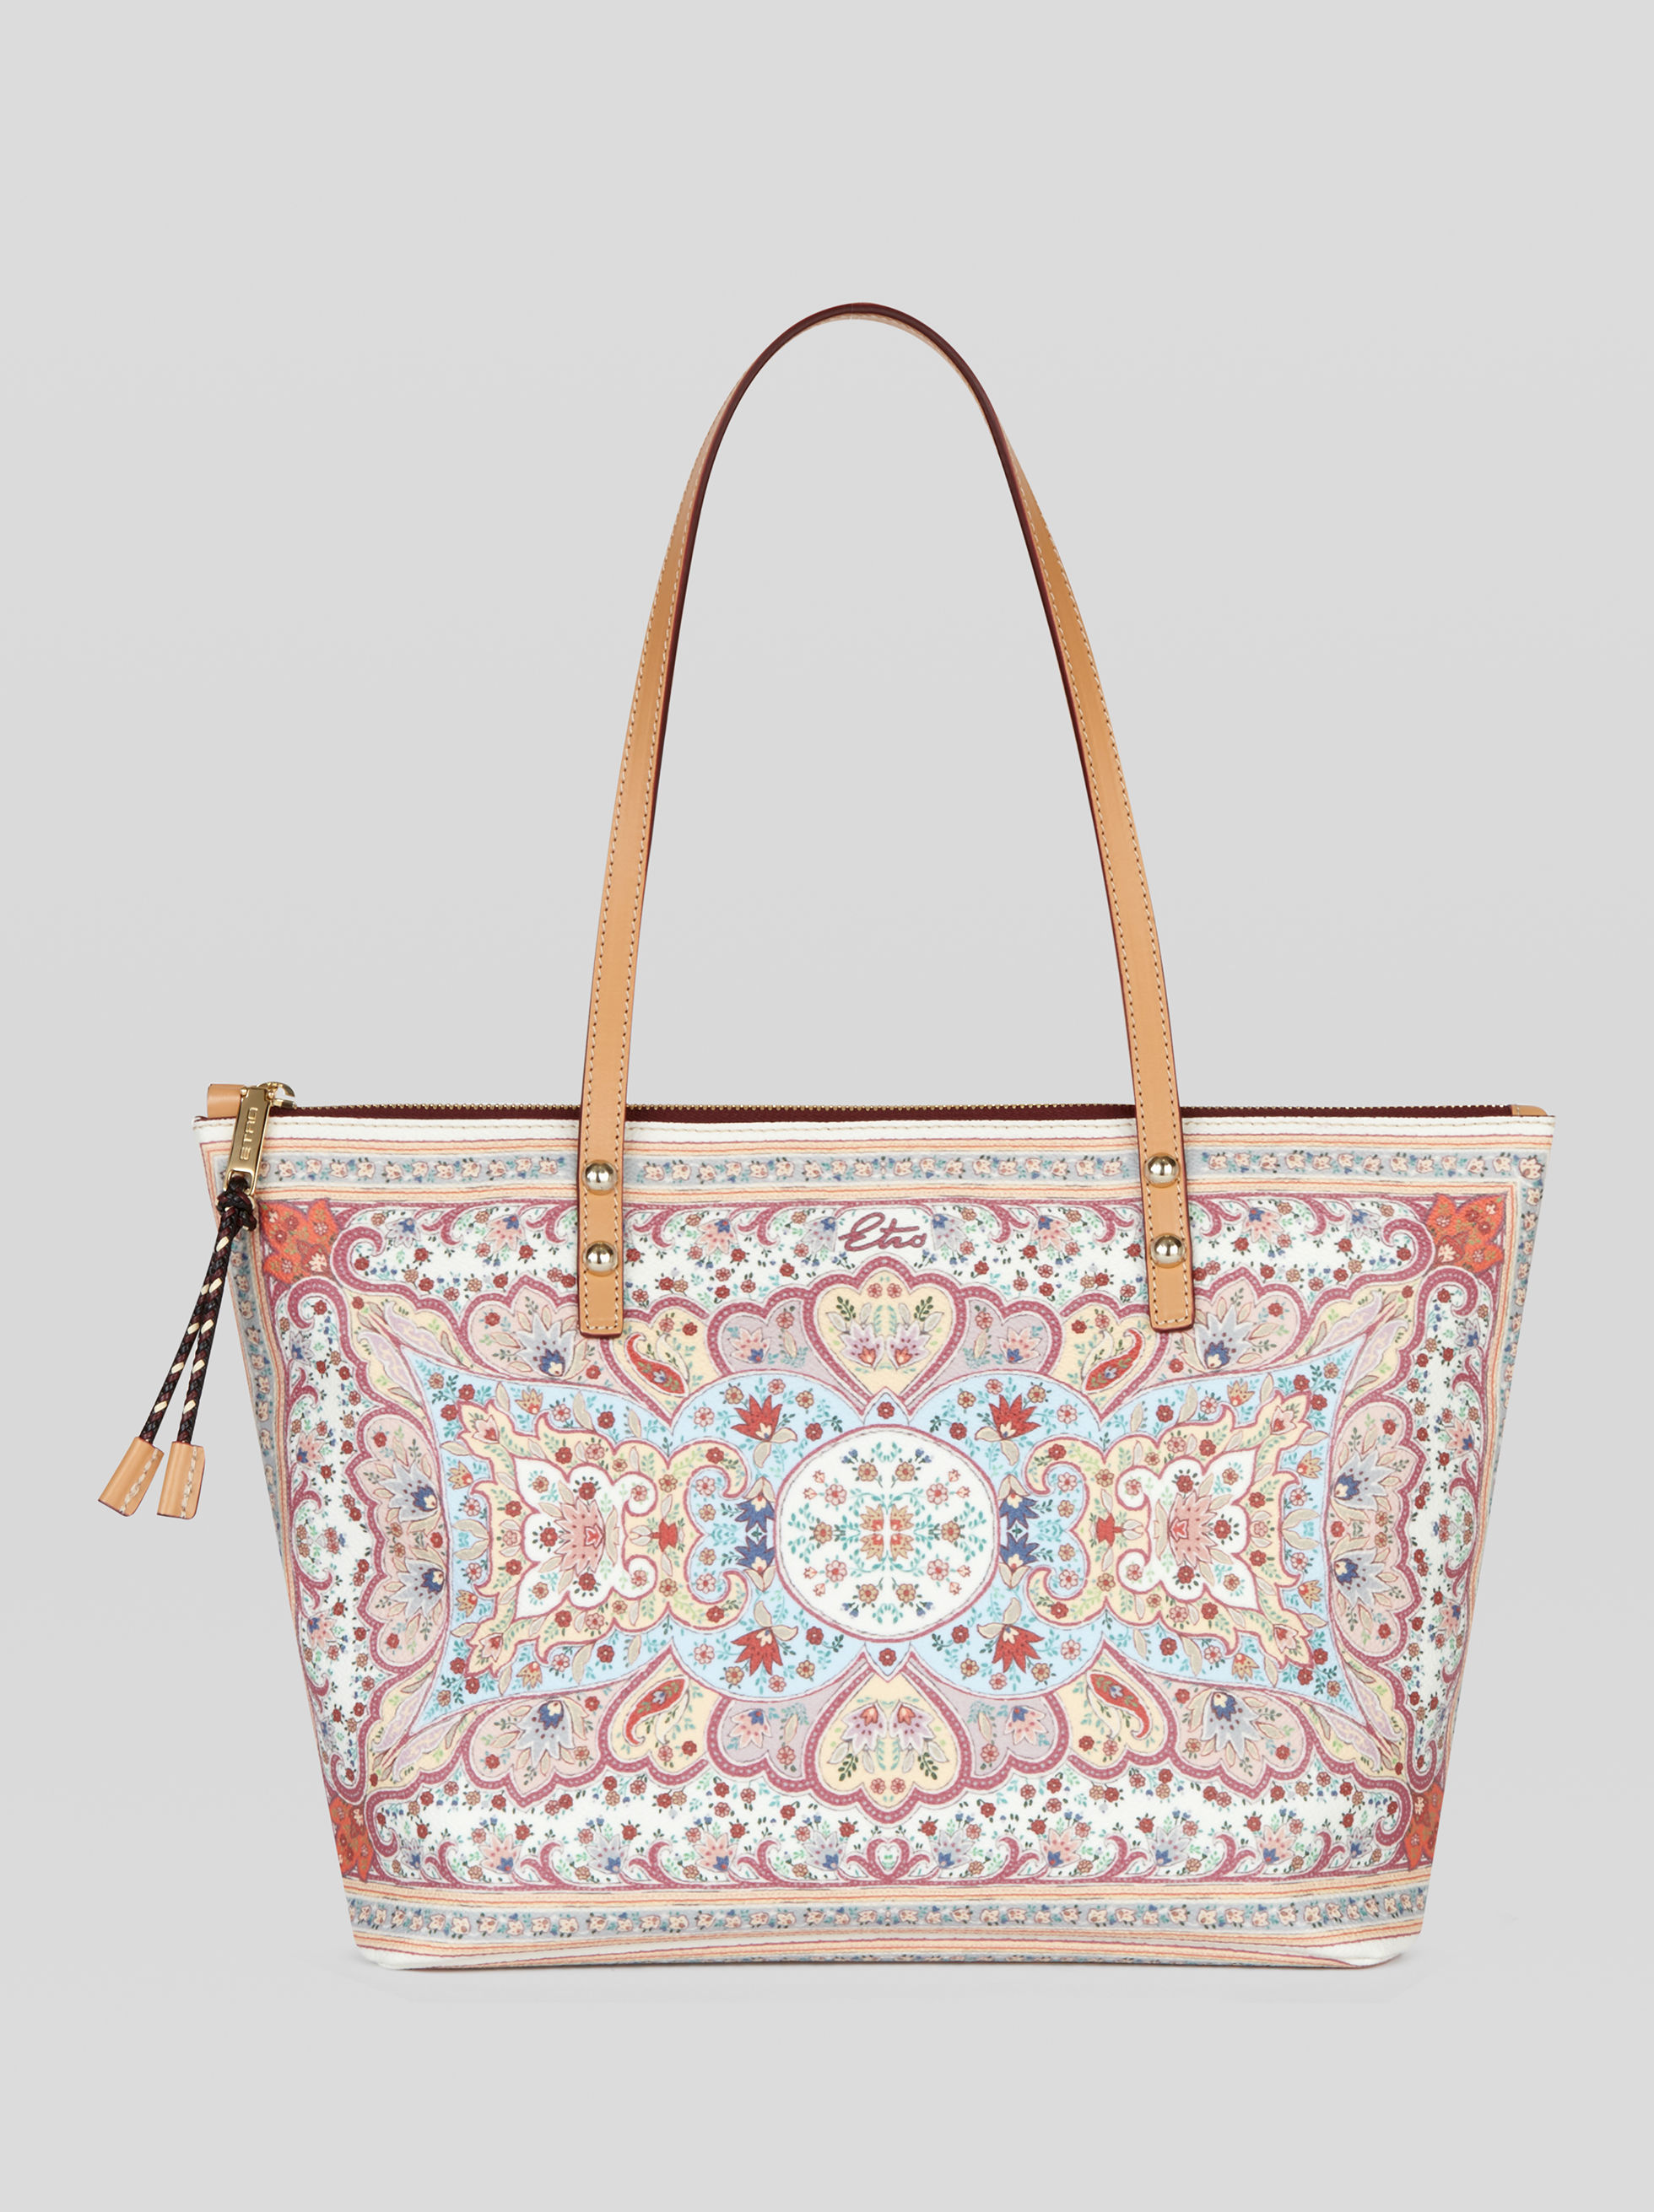 SHOPPING BAG WITH FLORAL PATTERNS